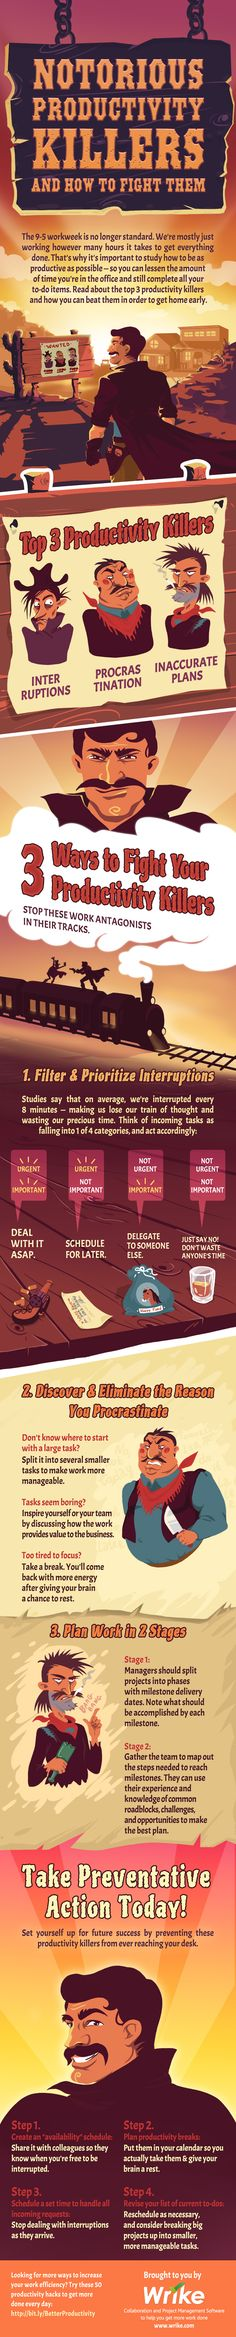 Notorious Productivity Killers and How to Fight Them #infographic #Productivity #Business